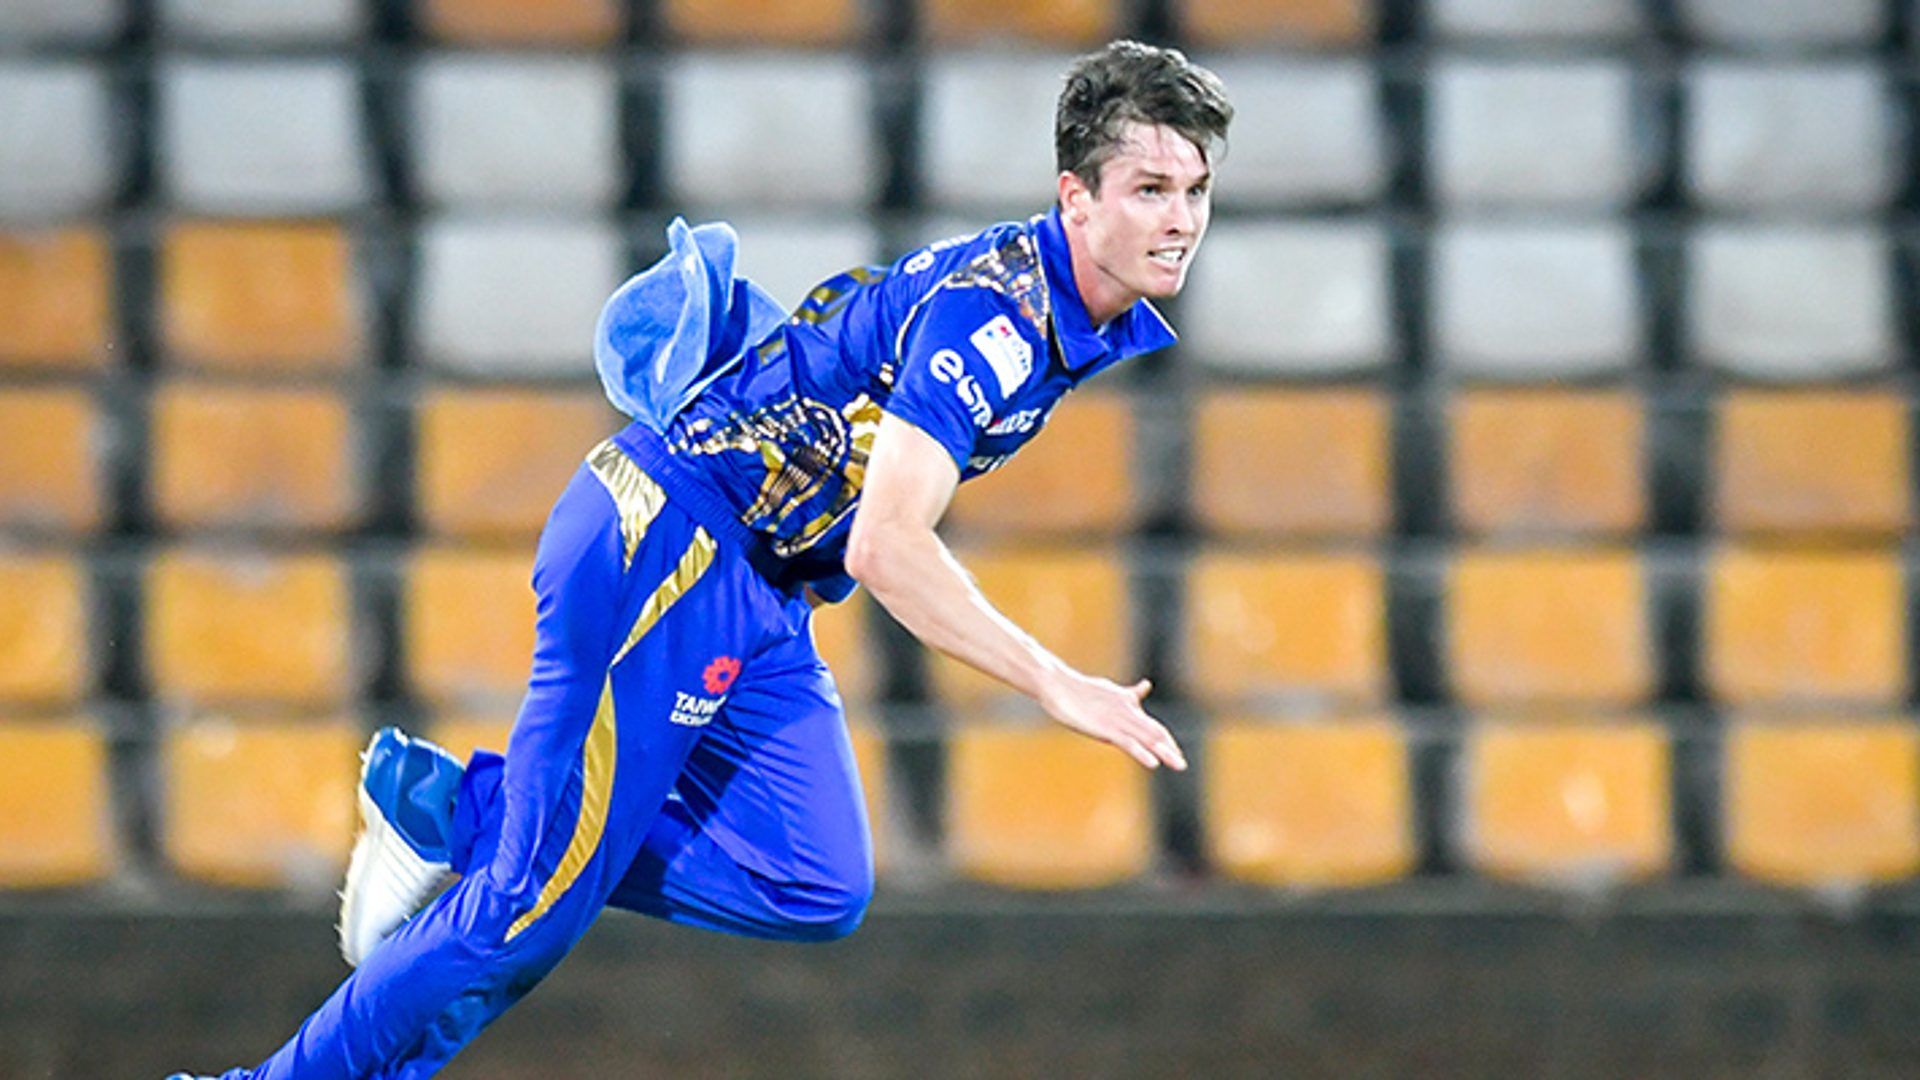 Being a part of MI is very cool, says Milne - Mumbai Indians